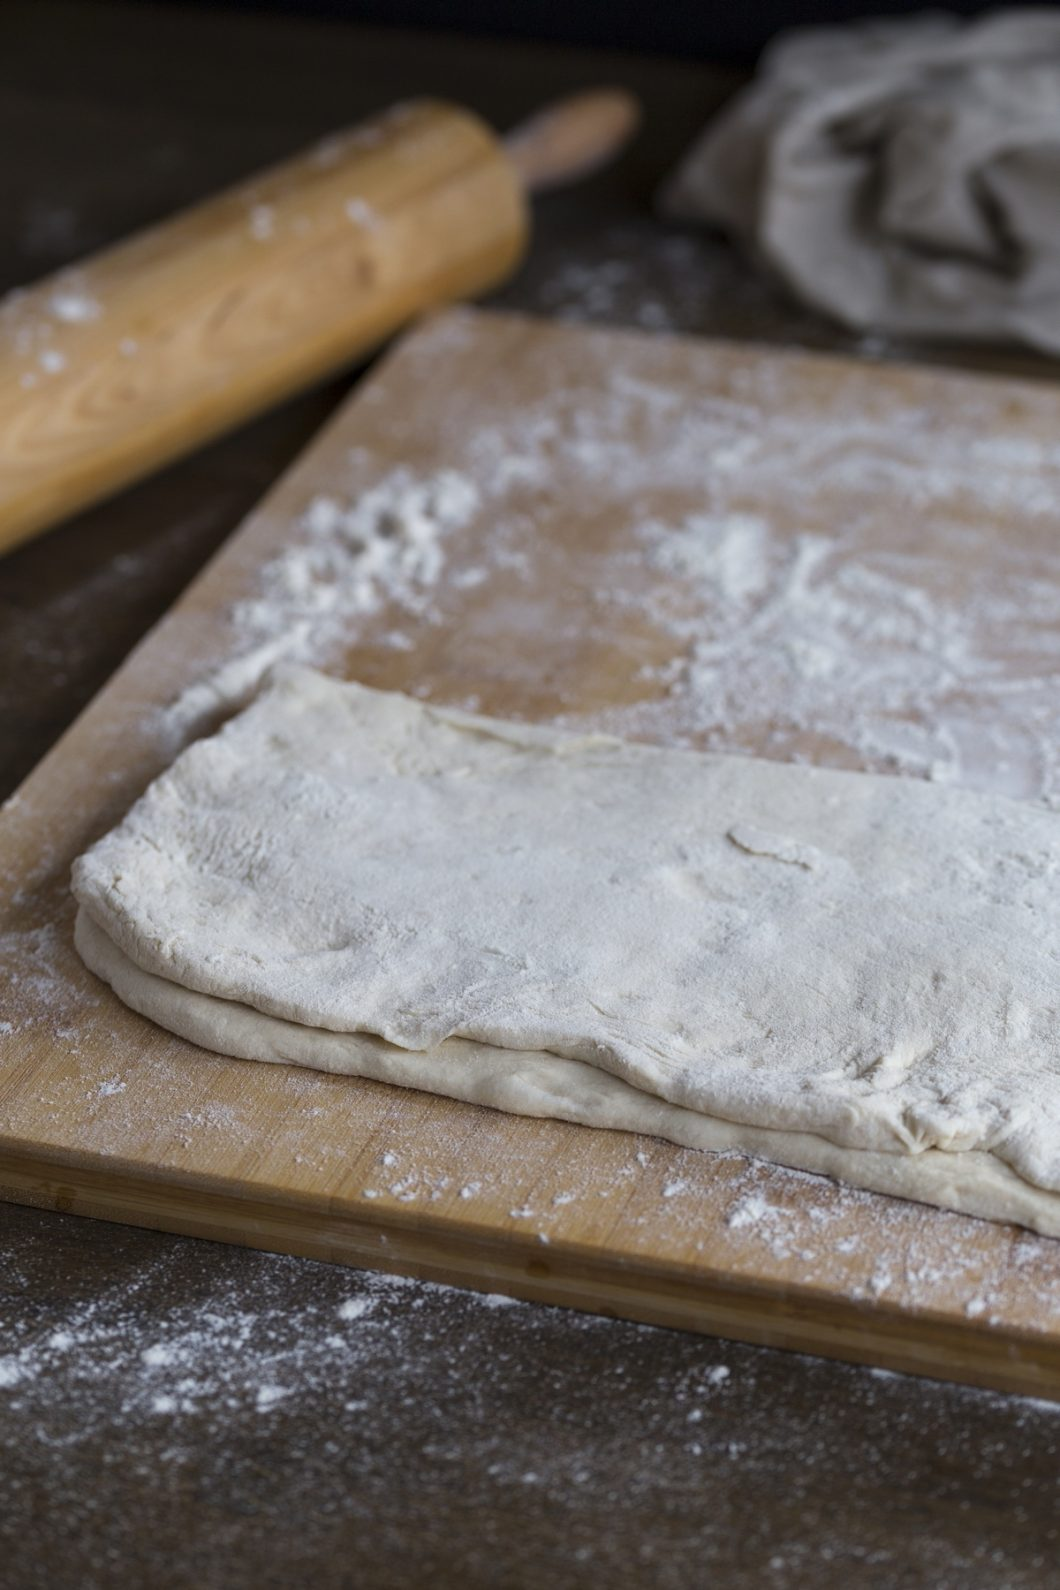 Dough folded on a wooden surface.